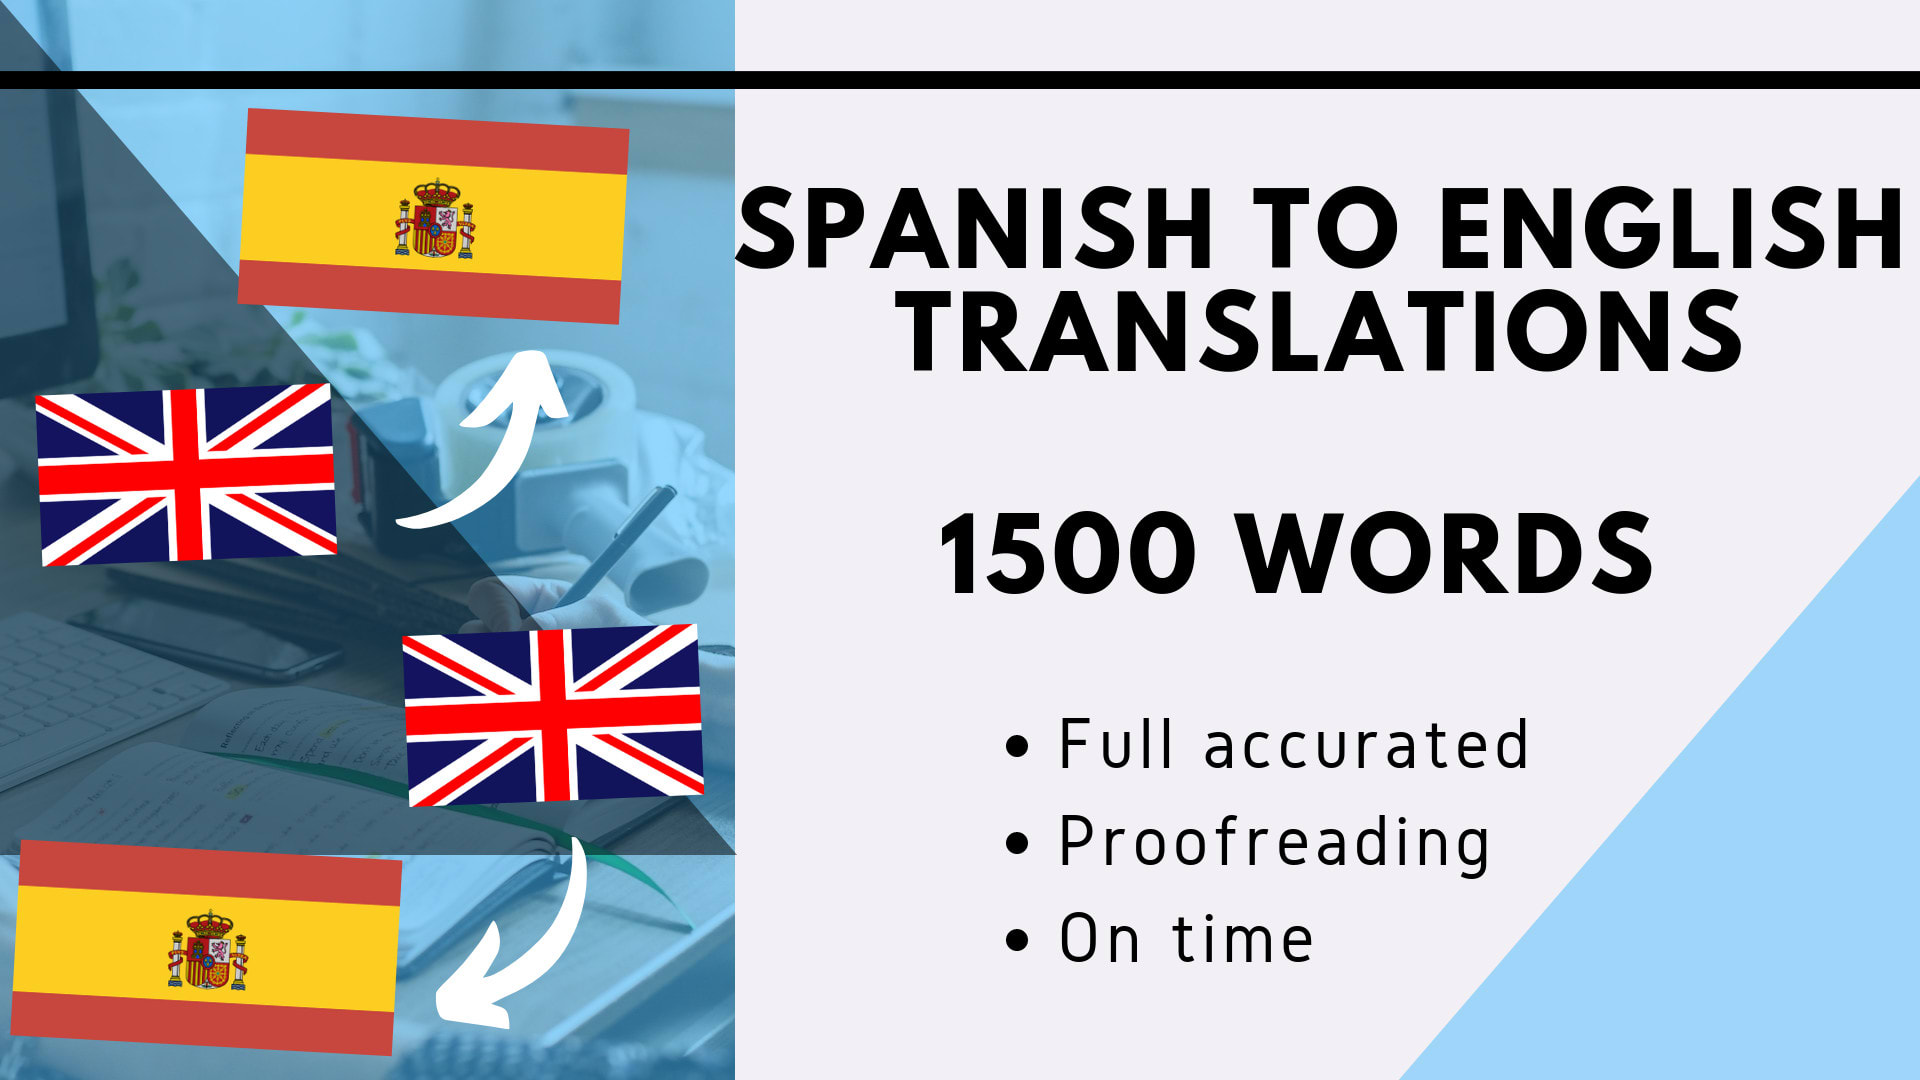 translate spanish to english 1500 words by davidperez08 fiverr